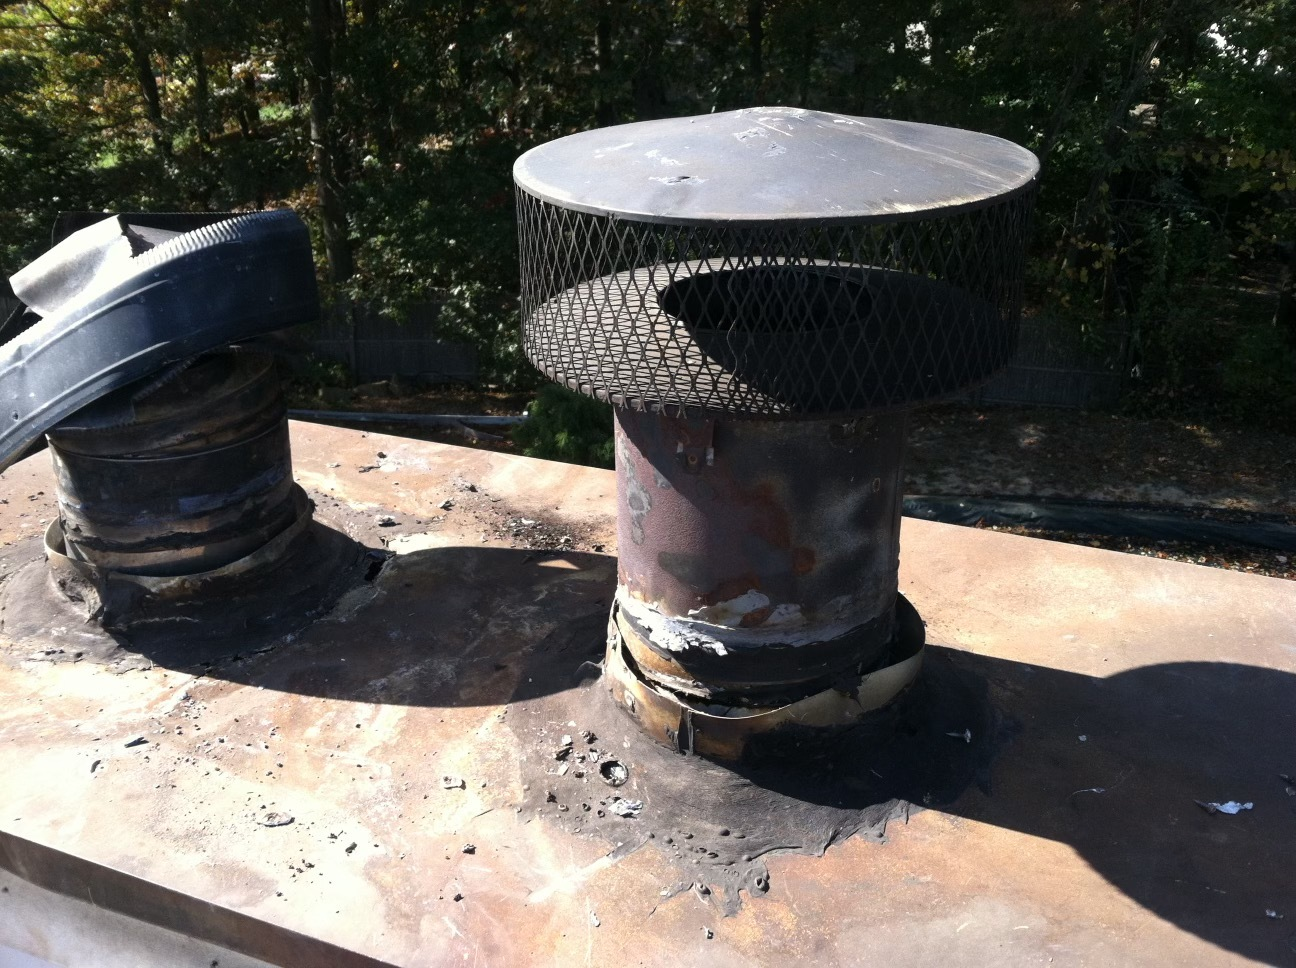 Chimney caps are important for keeping out animals, debris, and water.